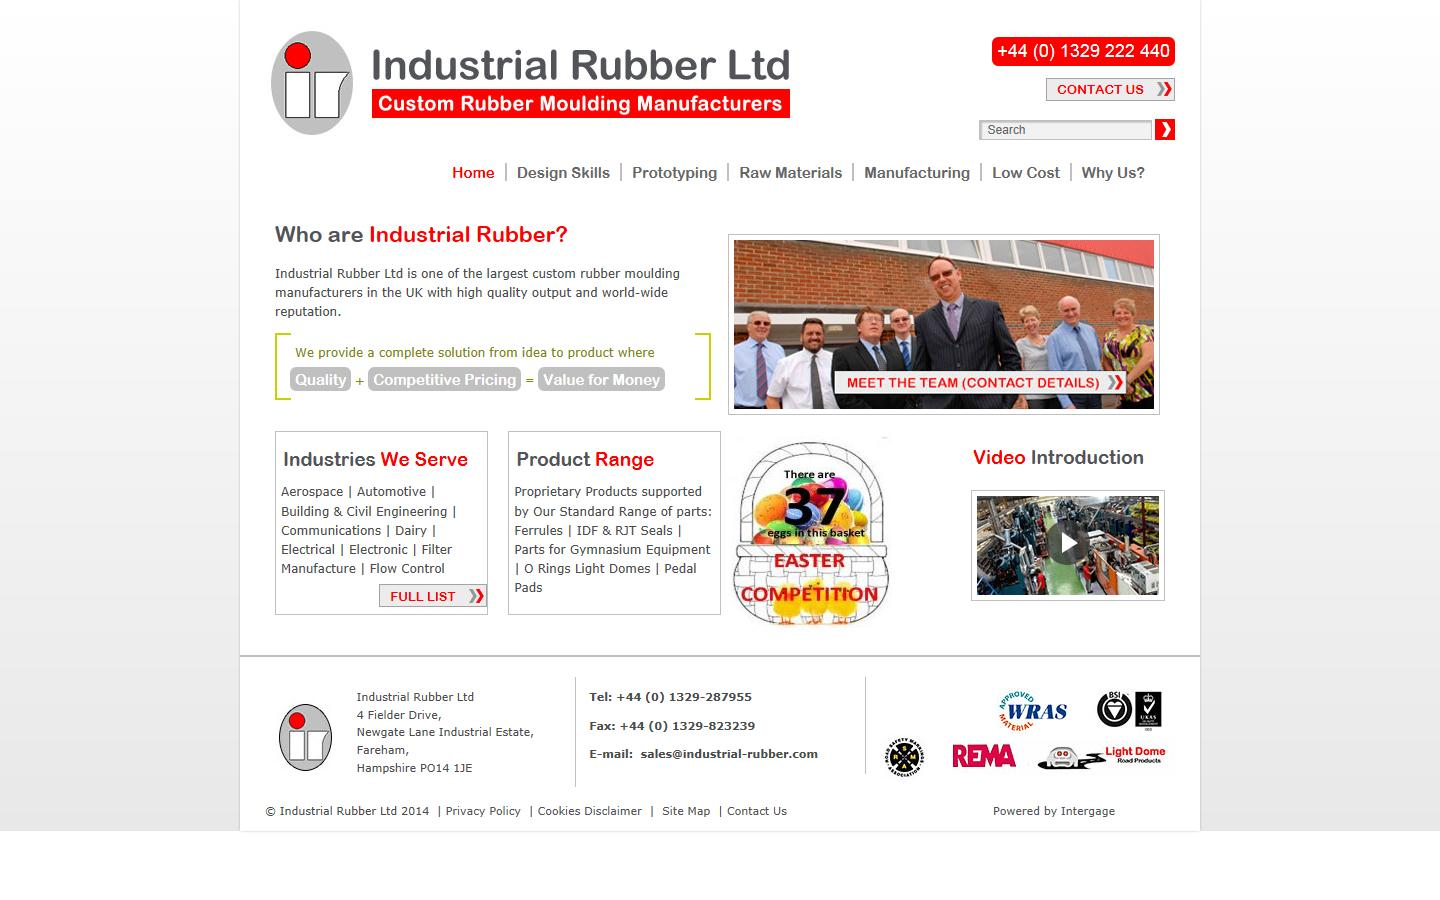 Industrial Rubber Ltd, Fareham Hampshire, PO14 1JE